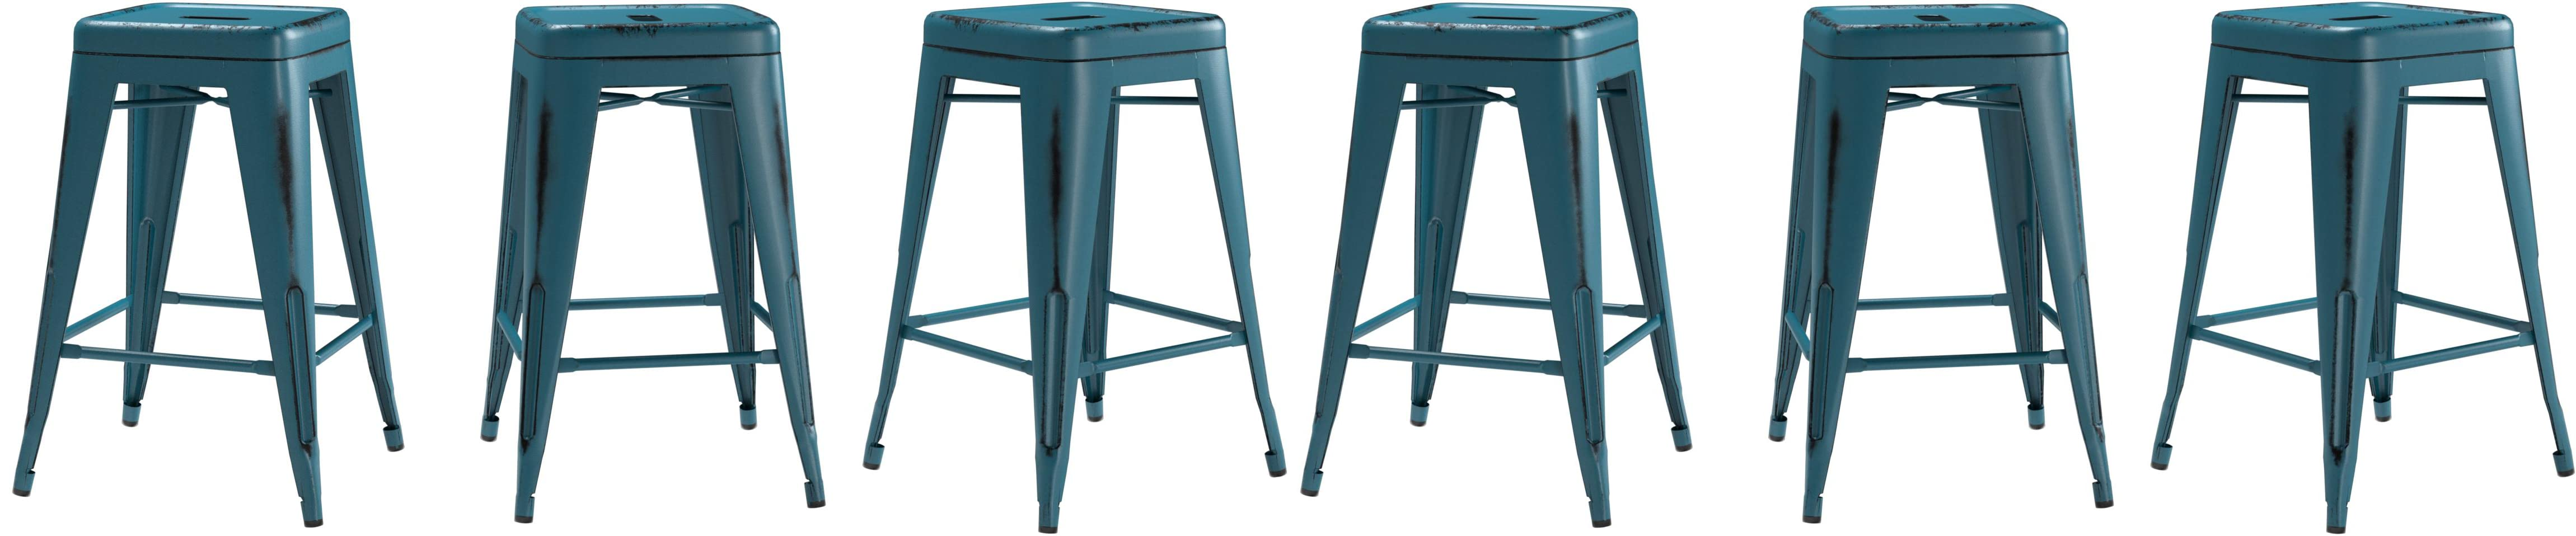 Amazon.com: Flash Furniture 24\'\' High Backless Distressed Kelly Blue ...